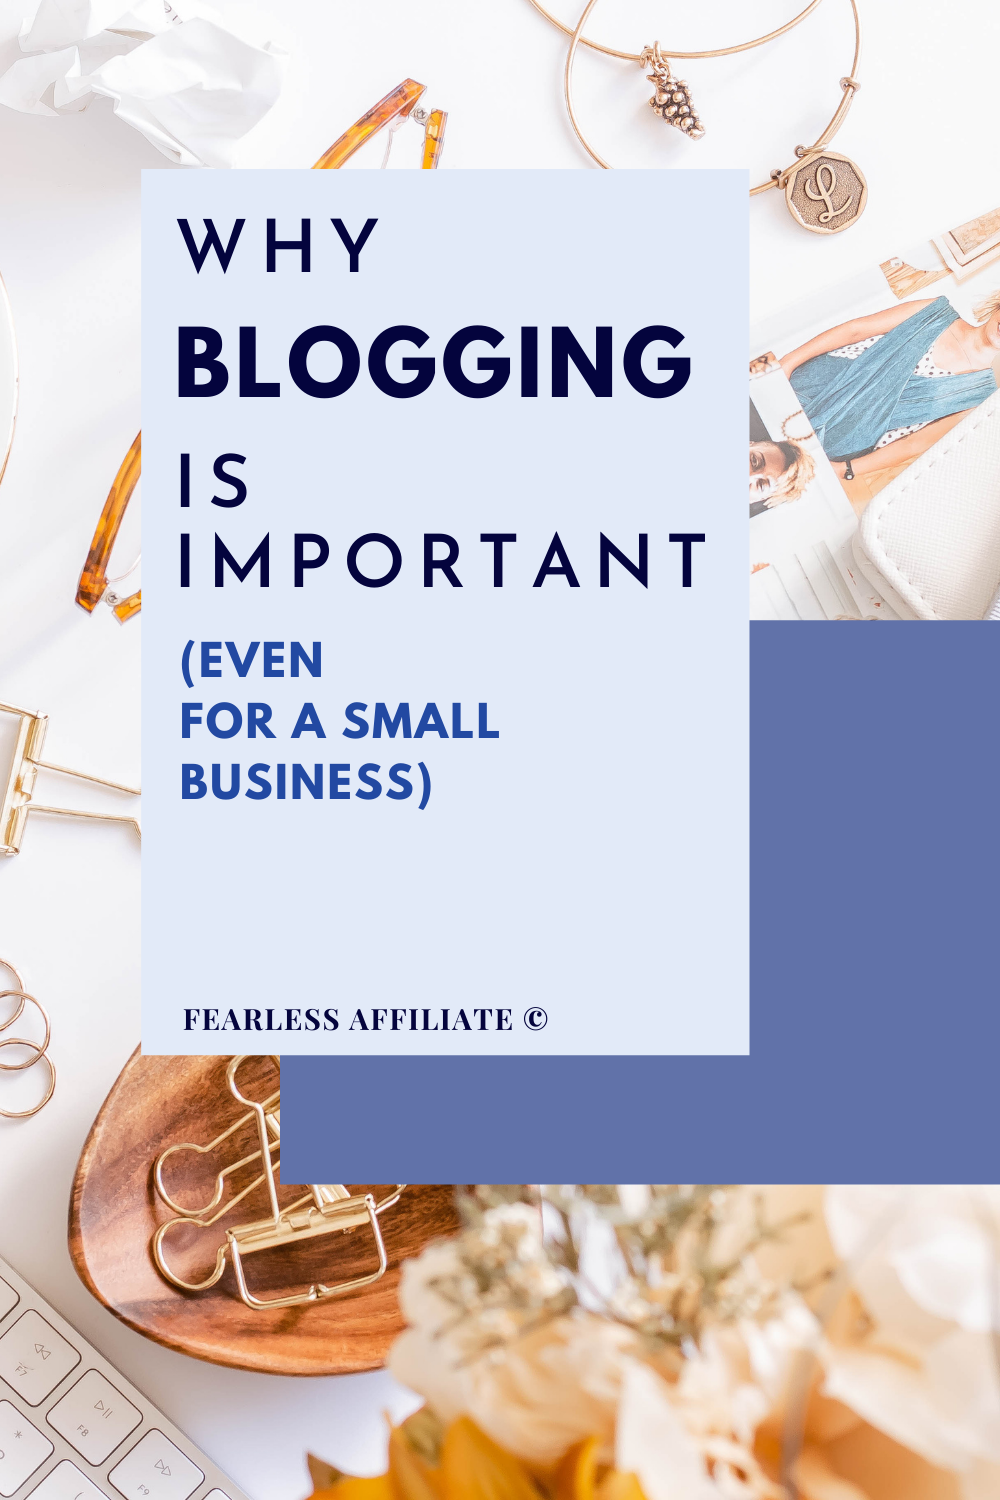 Why Blogging is Important for Businesses